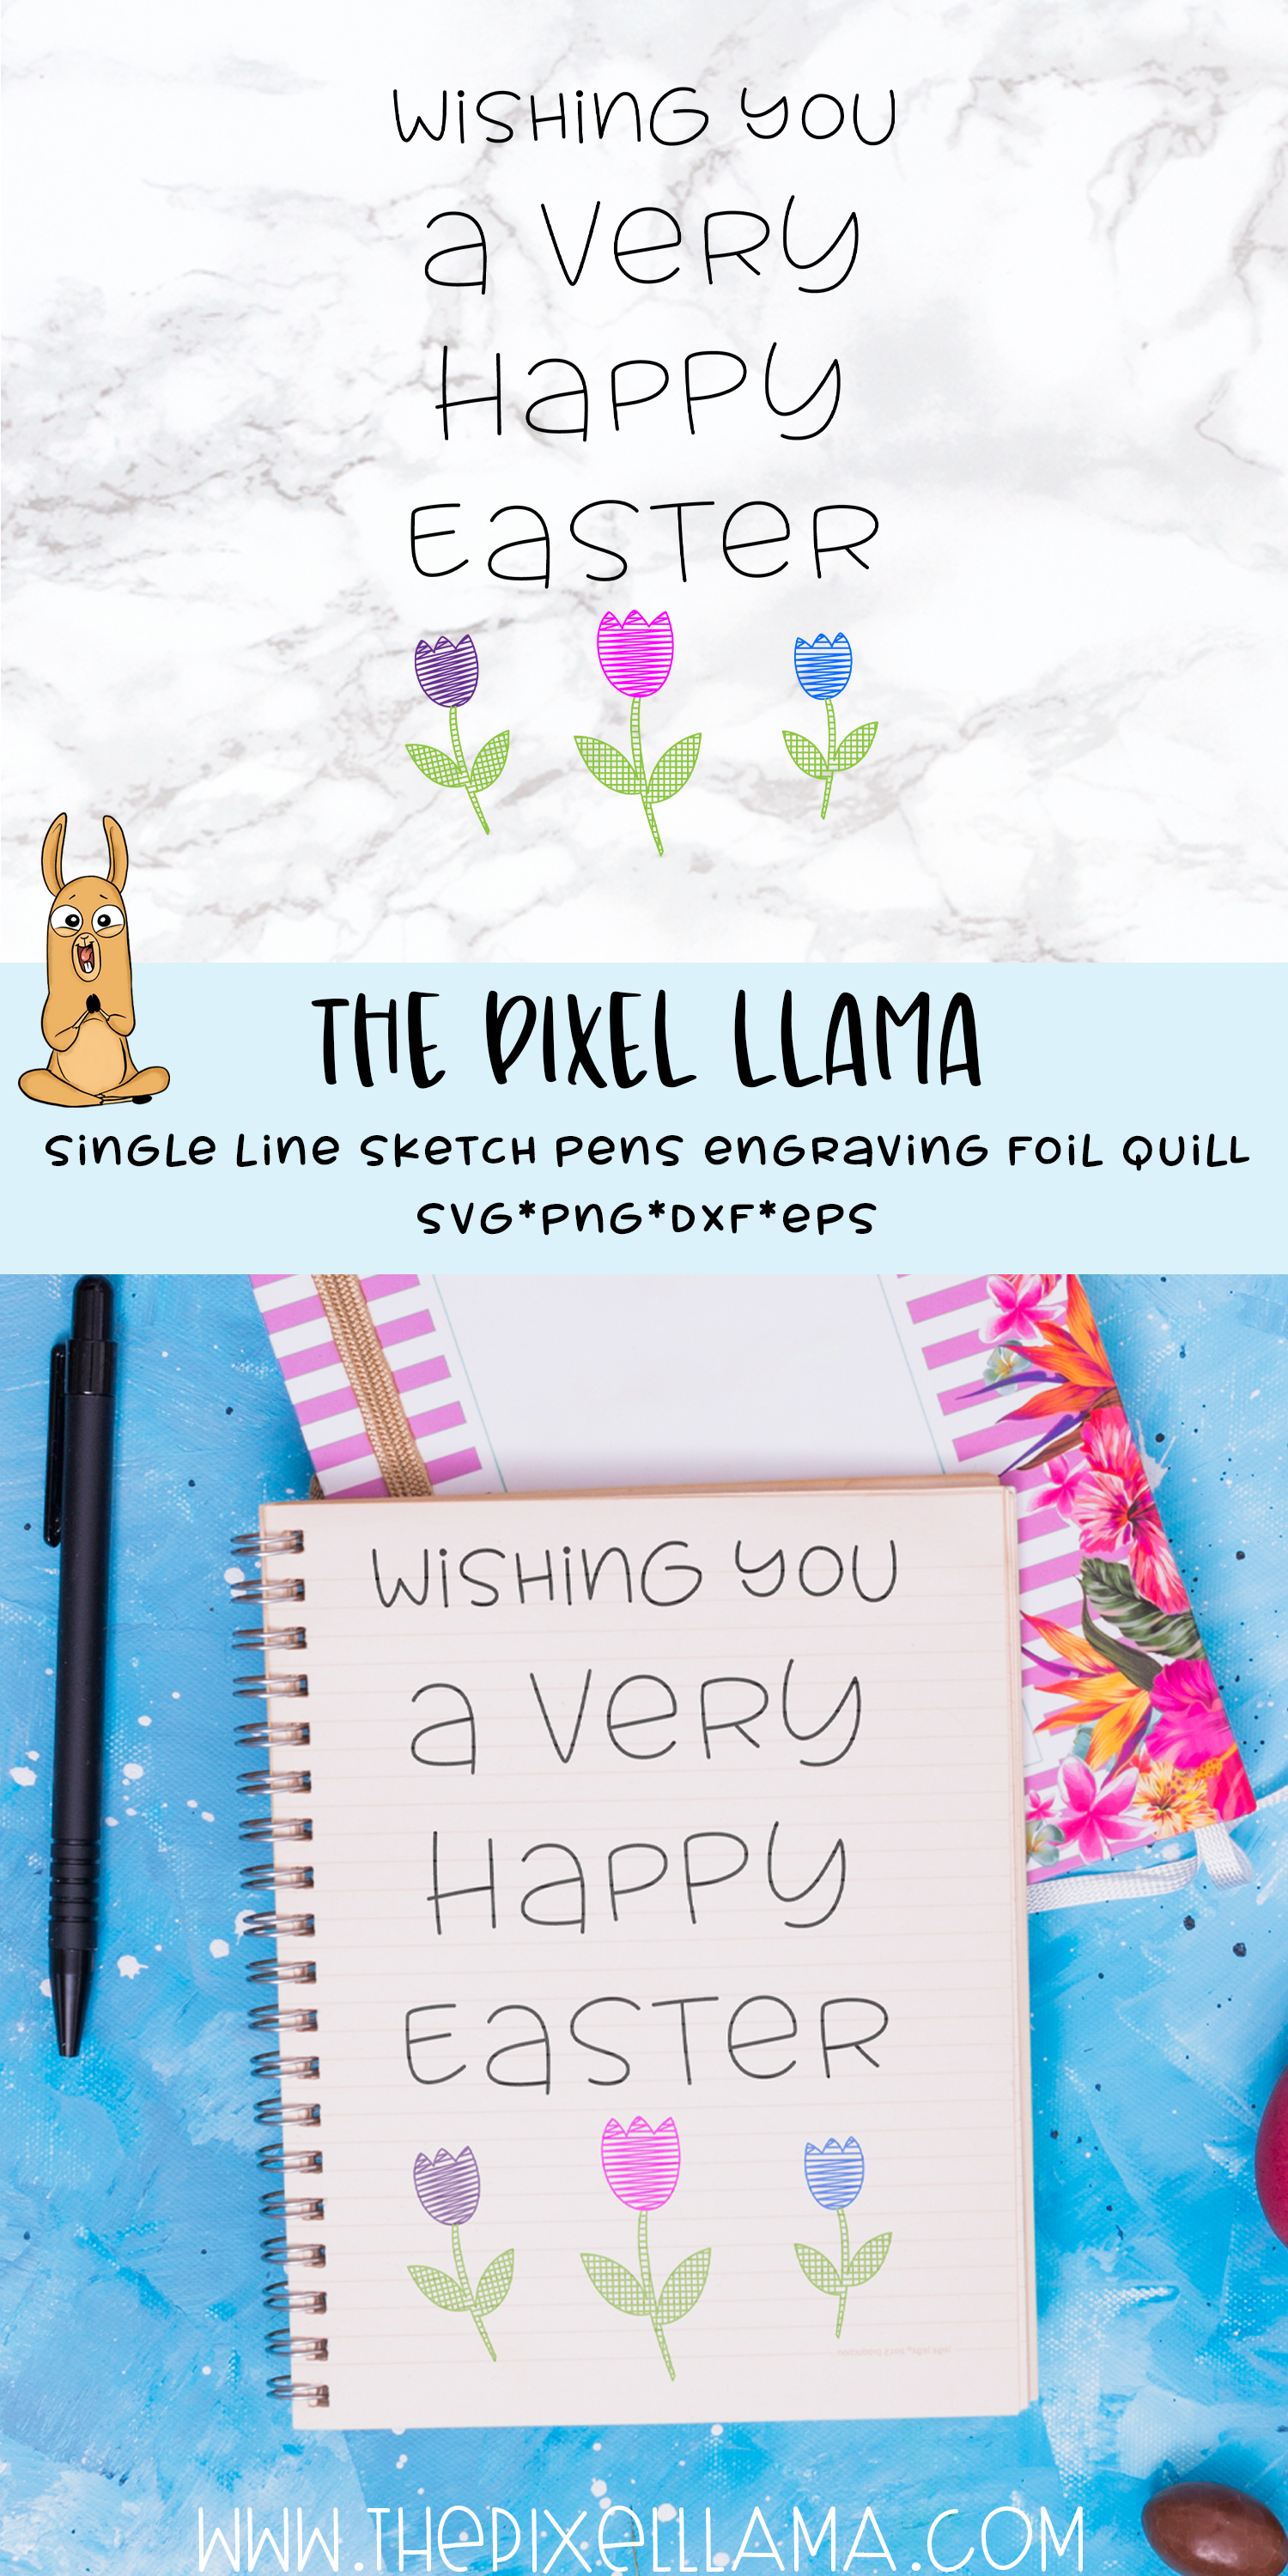 Wishing A Very Happy Easter Single Line Sketch Foil Quill example image 2